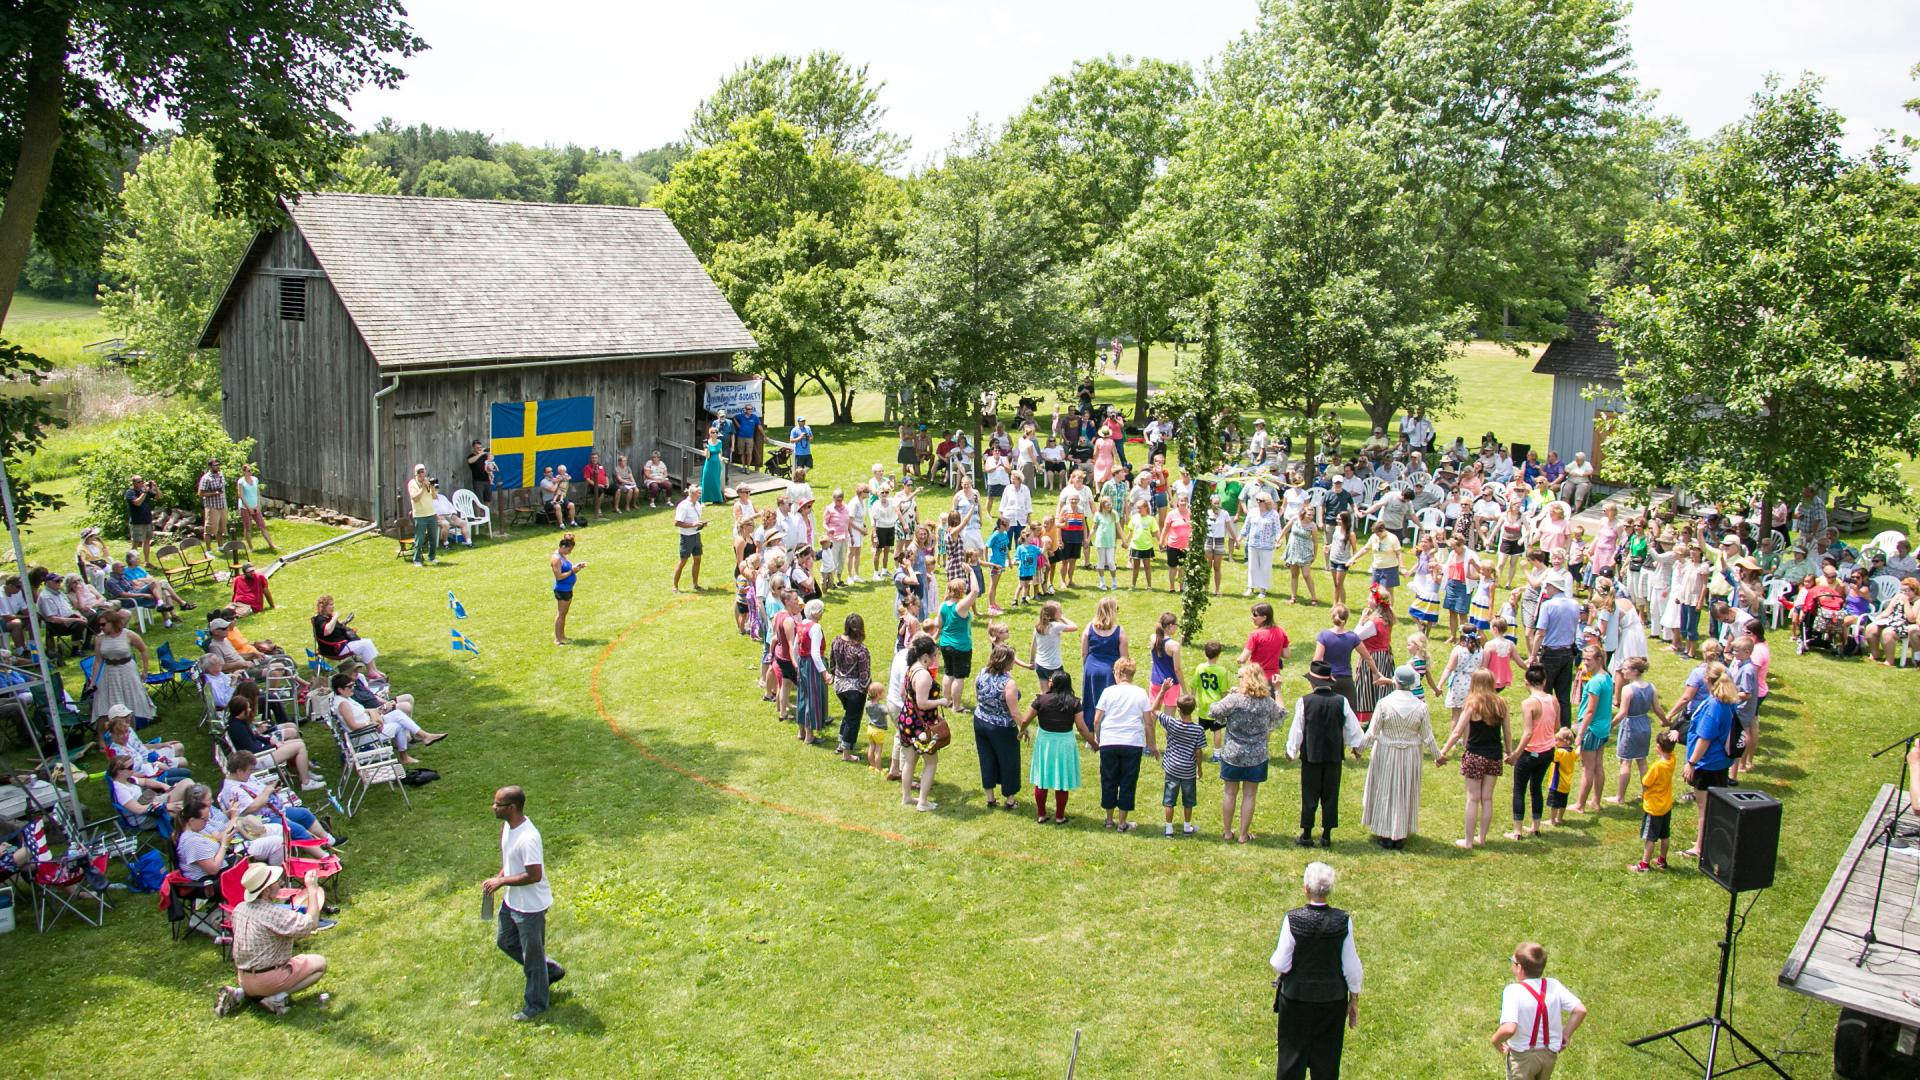 Dancing around the Maypole at Midsommar celebration